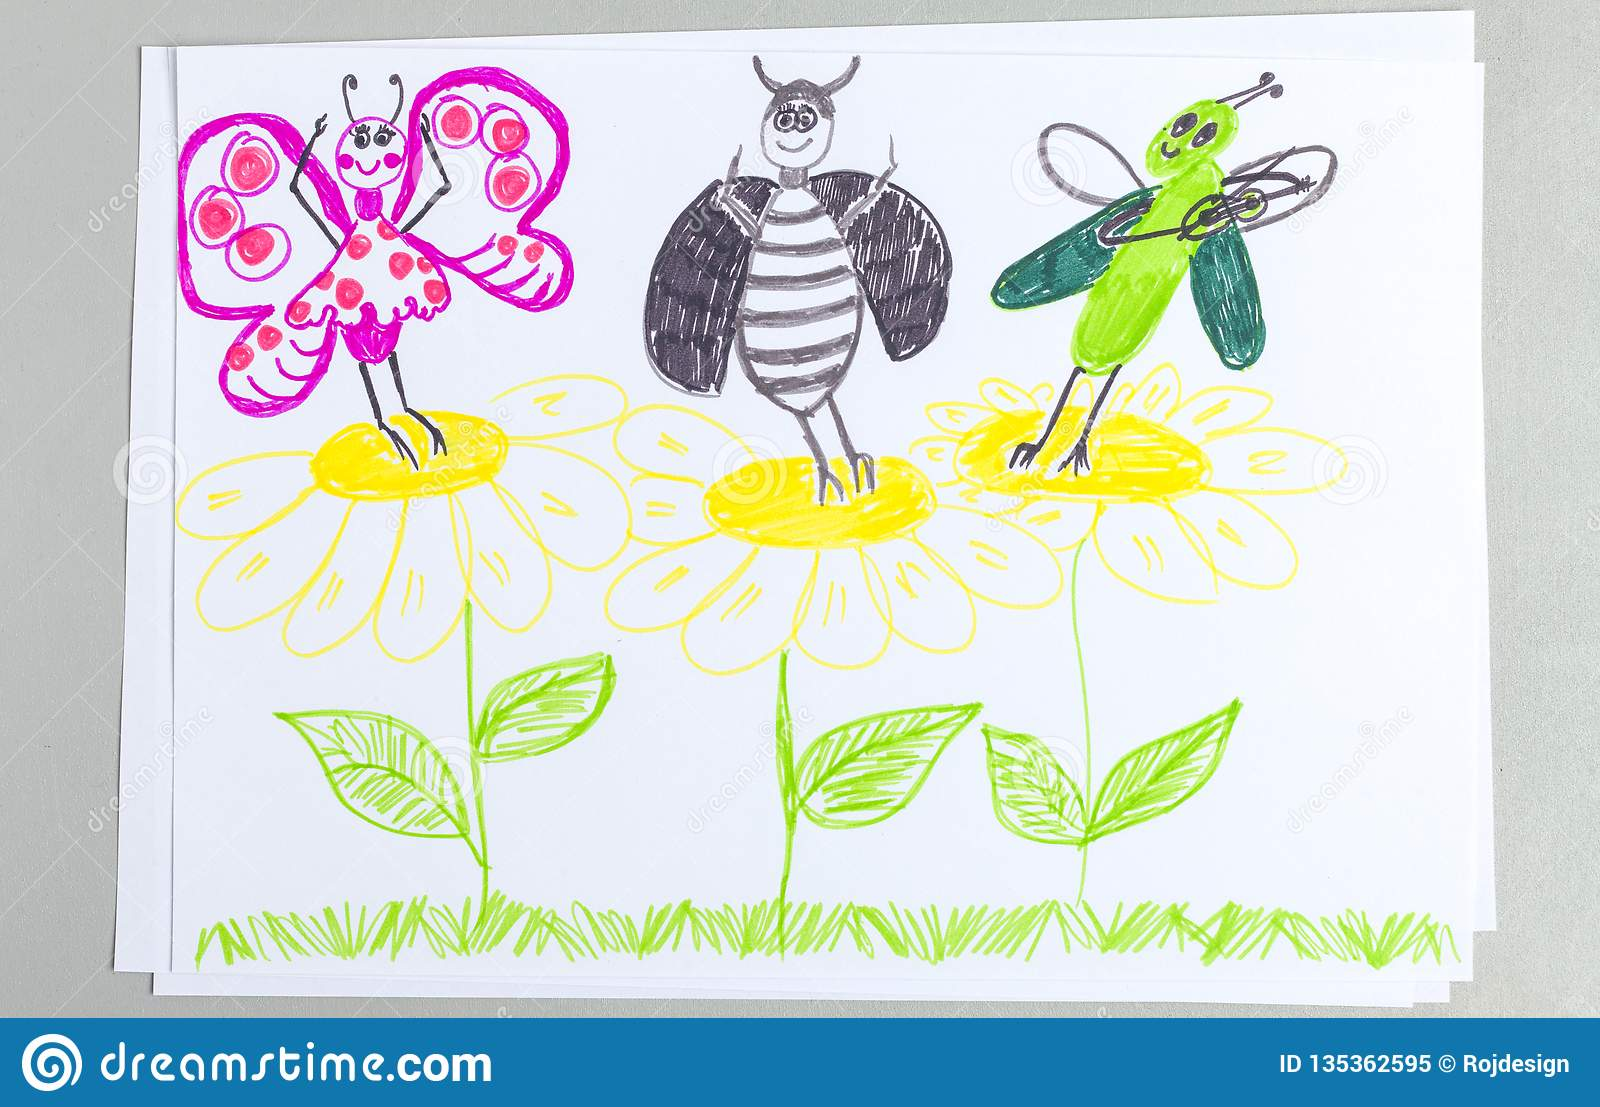 Kid doodle of insects dancing and having fun on flowers